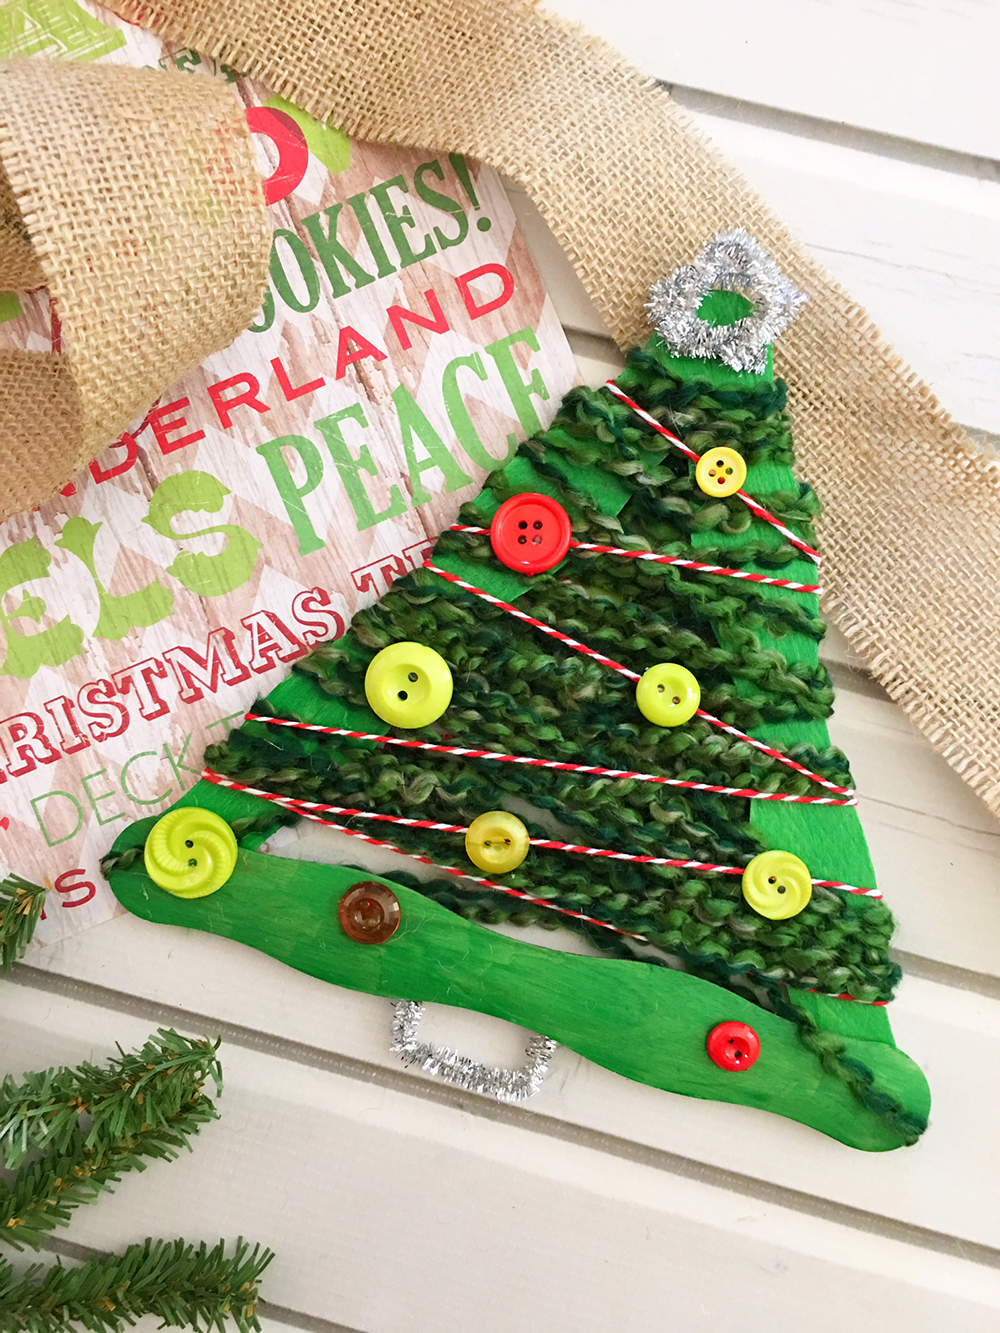 Yarn-wrapped Christmas tree craft stick ornaments are a great holiday project for the whole family. They're so easy to make and a festive addition to your Christmas decor-glue silver pipe cleaner on bottom of craft stick tree to resemble a tree trunk.